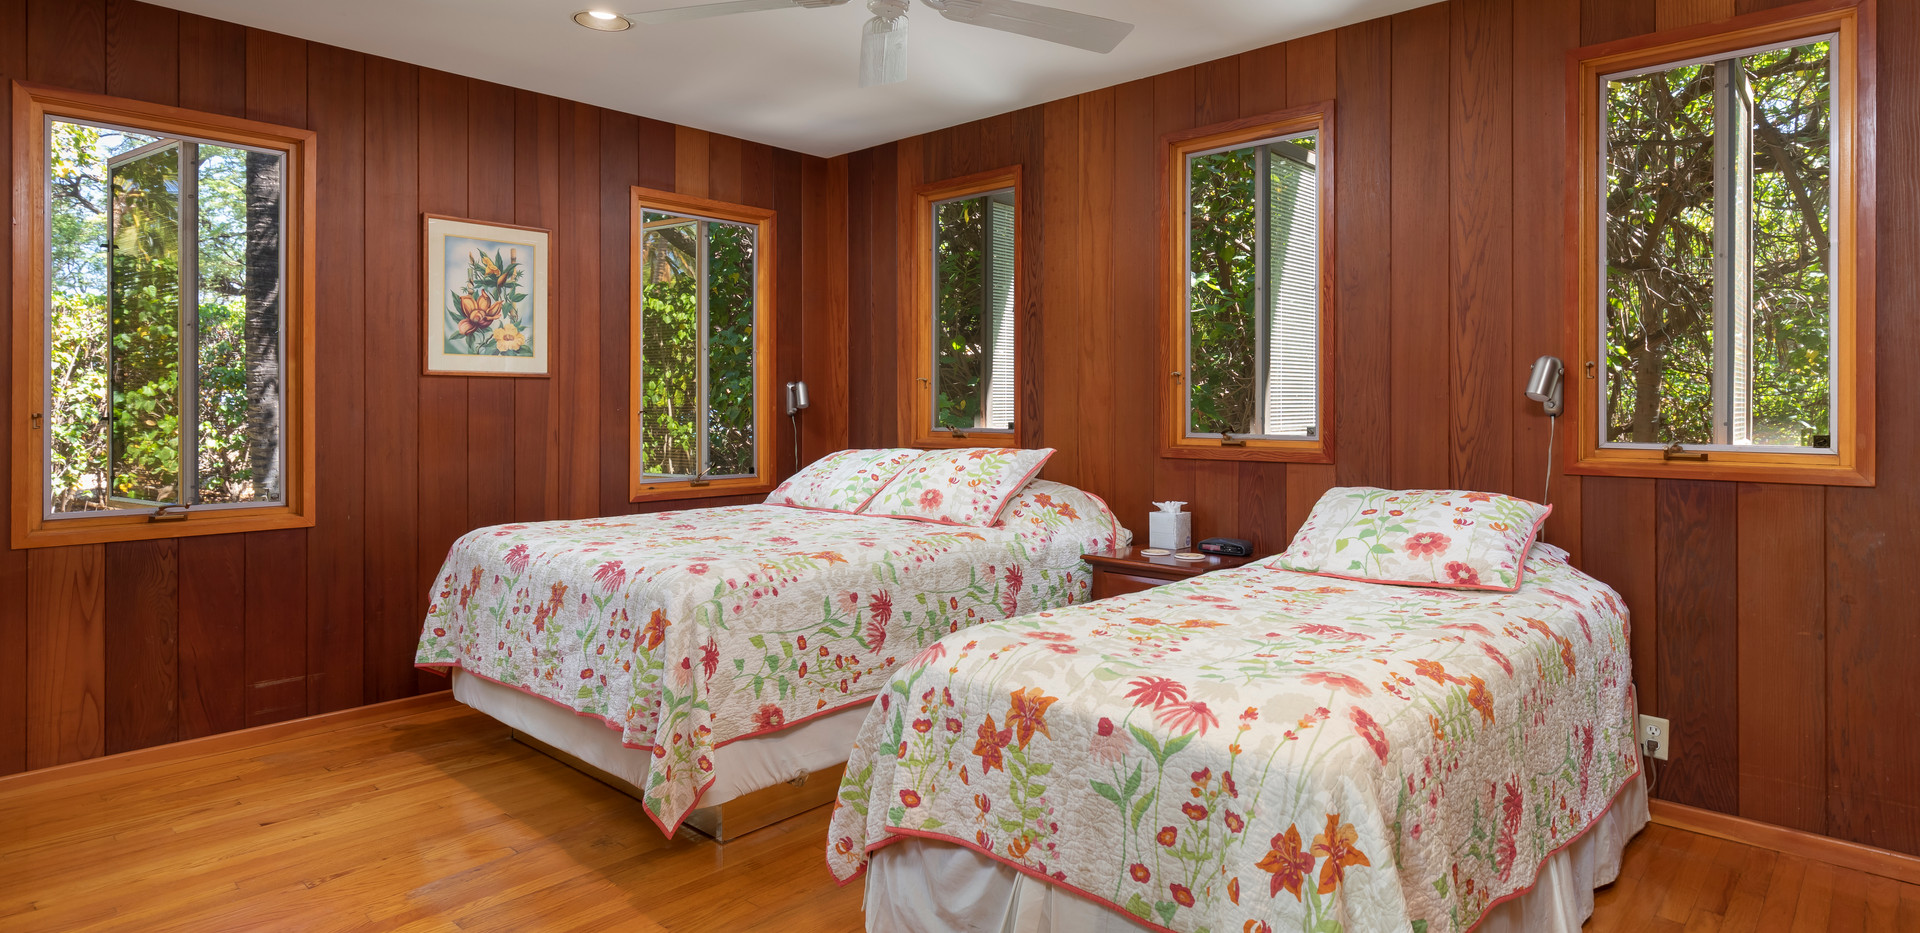 3rd bedroom, located downstairs with a Queen and Twin bed.